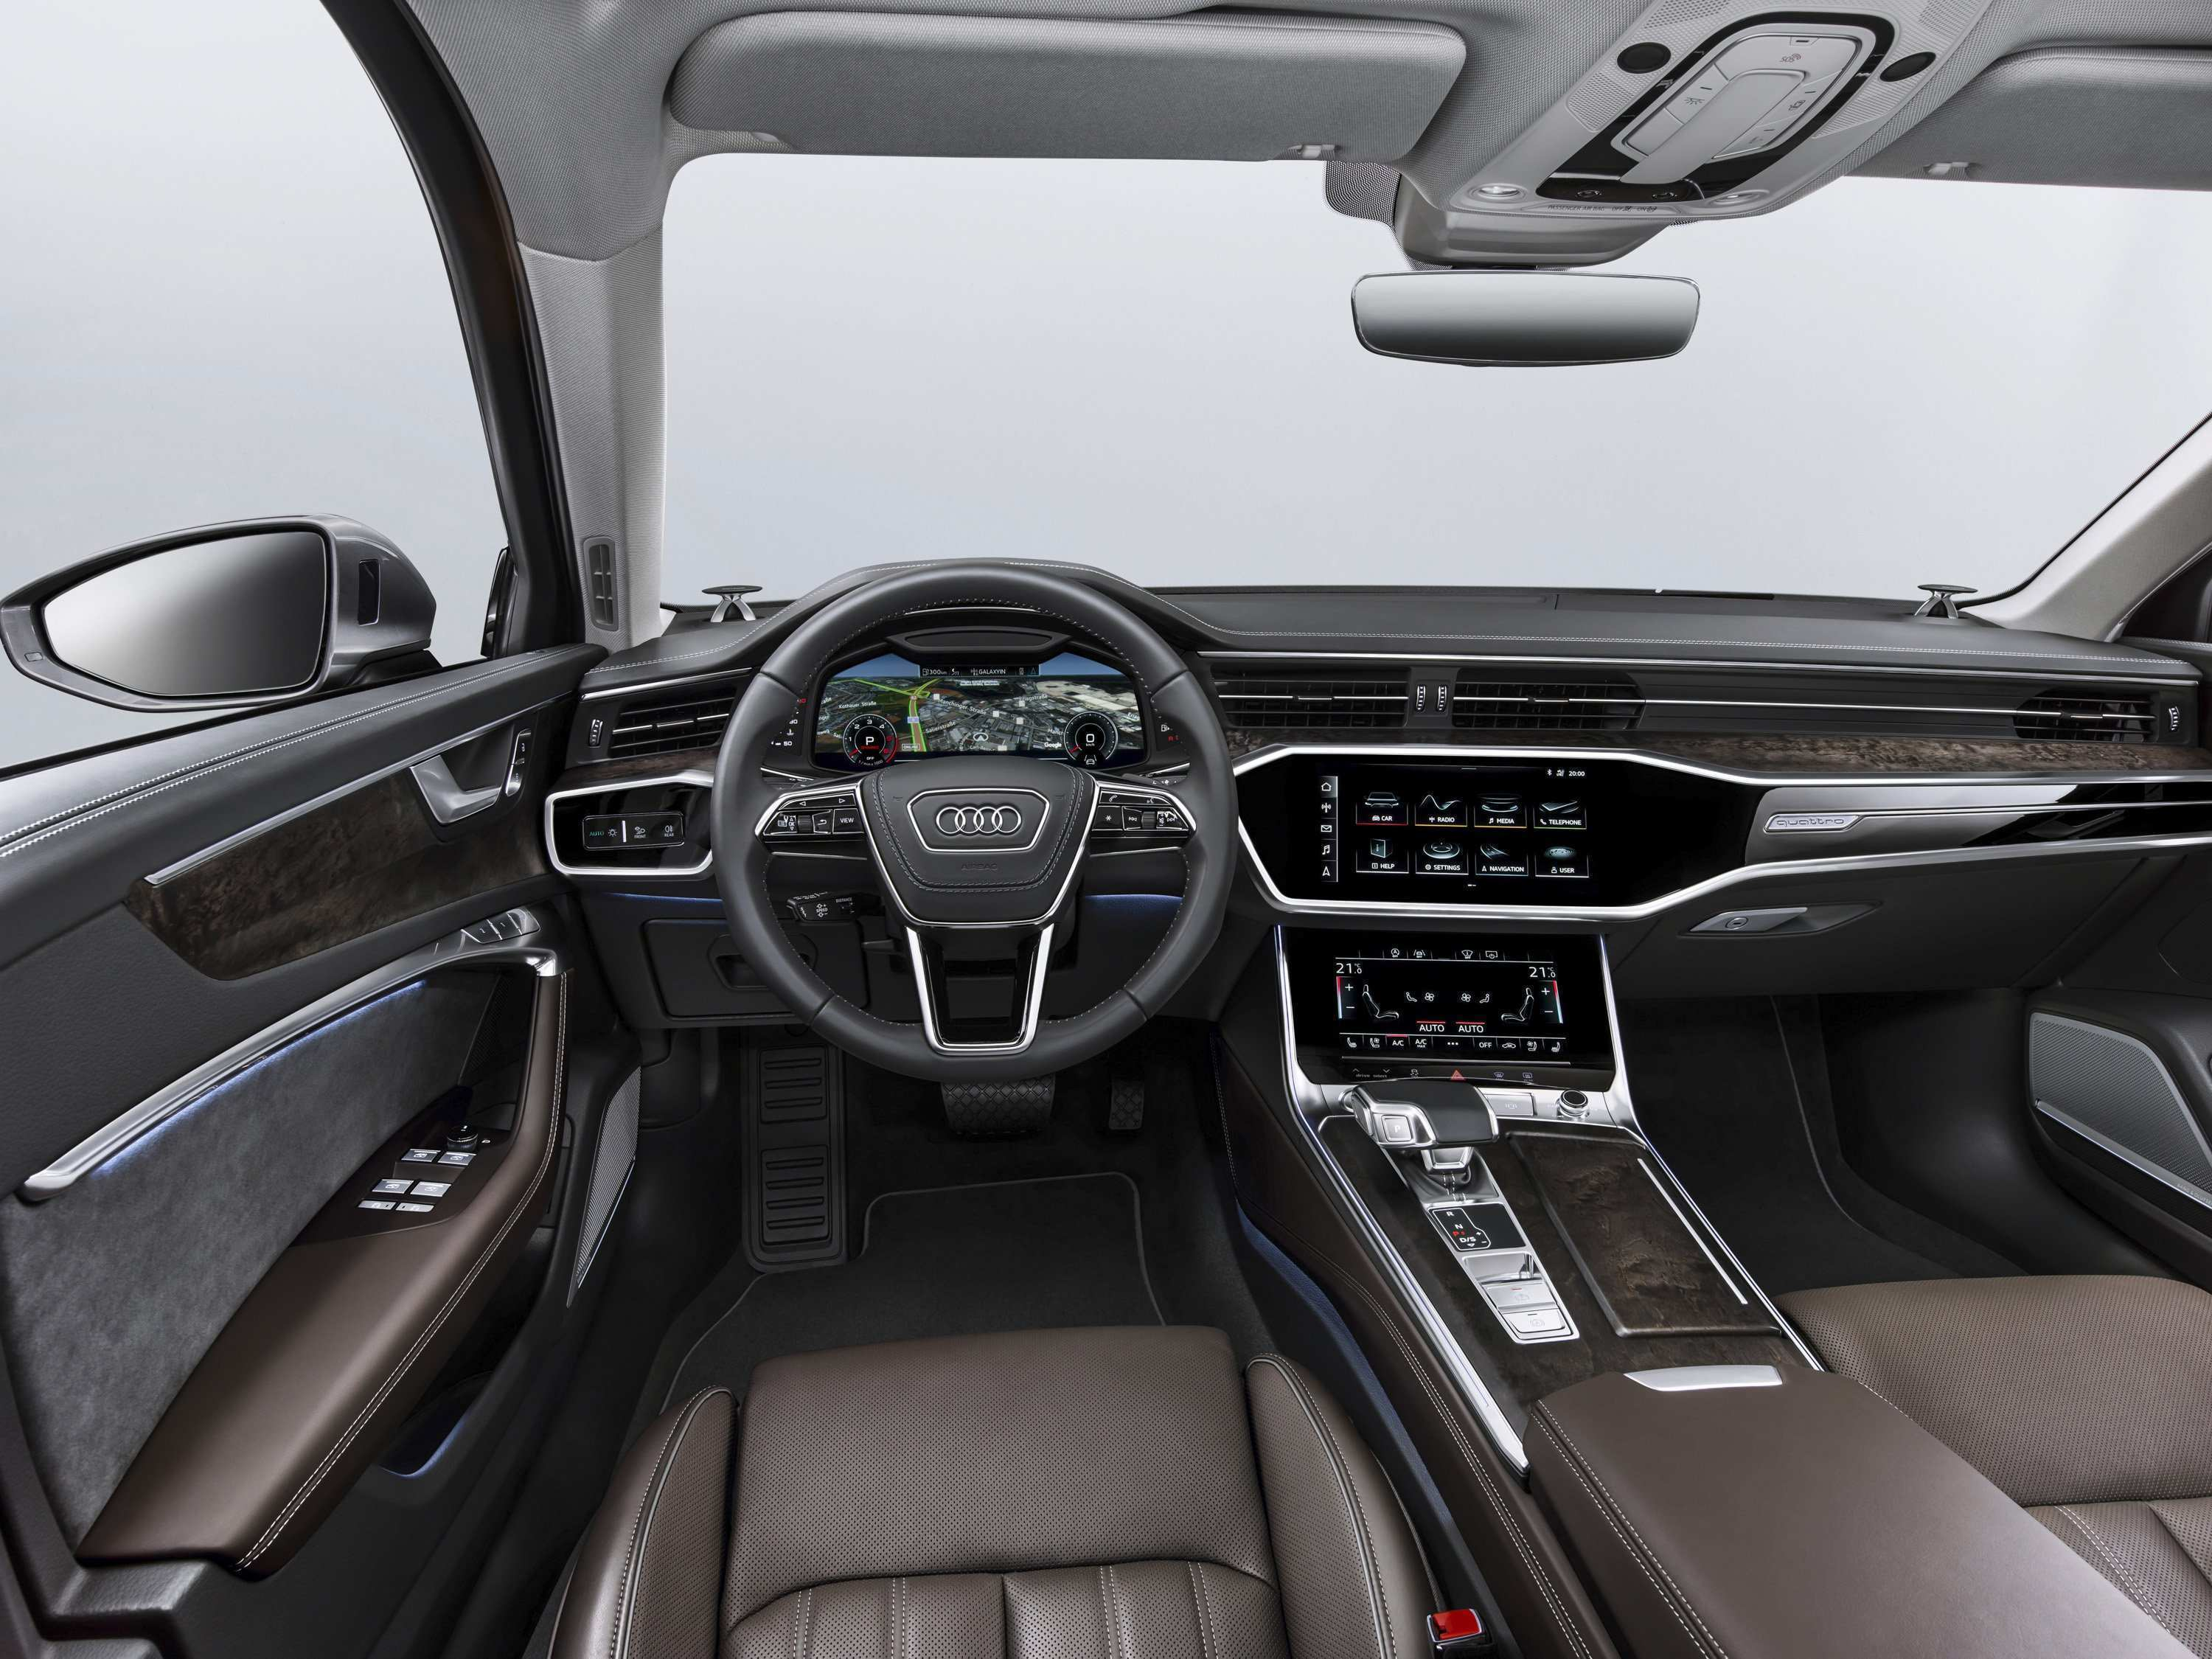 18 All New Audi A4 2020 Interior History